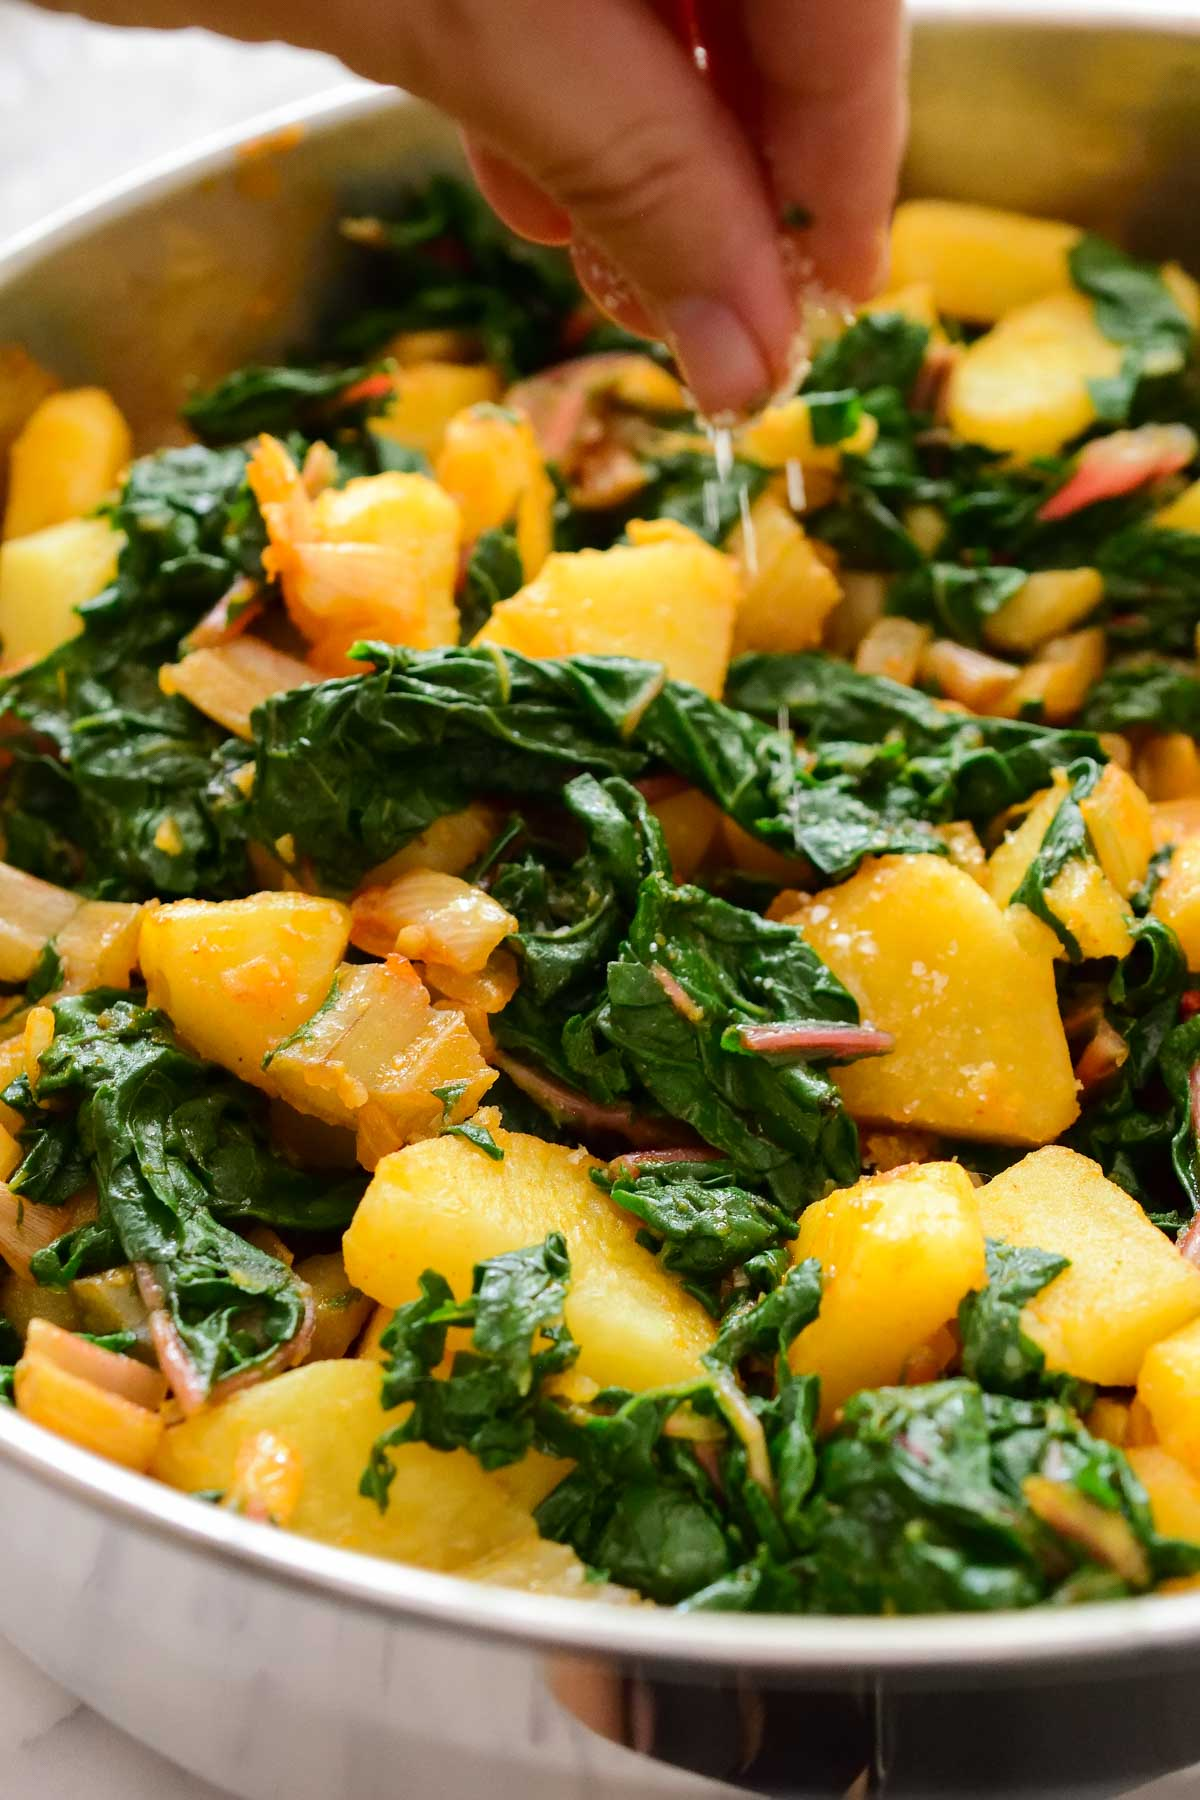 A hand sprinkling salt into the pan of Swiss chard and potatoes.